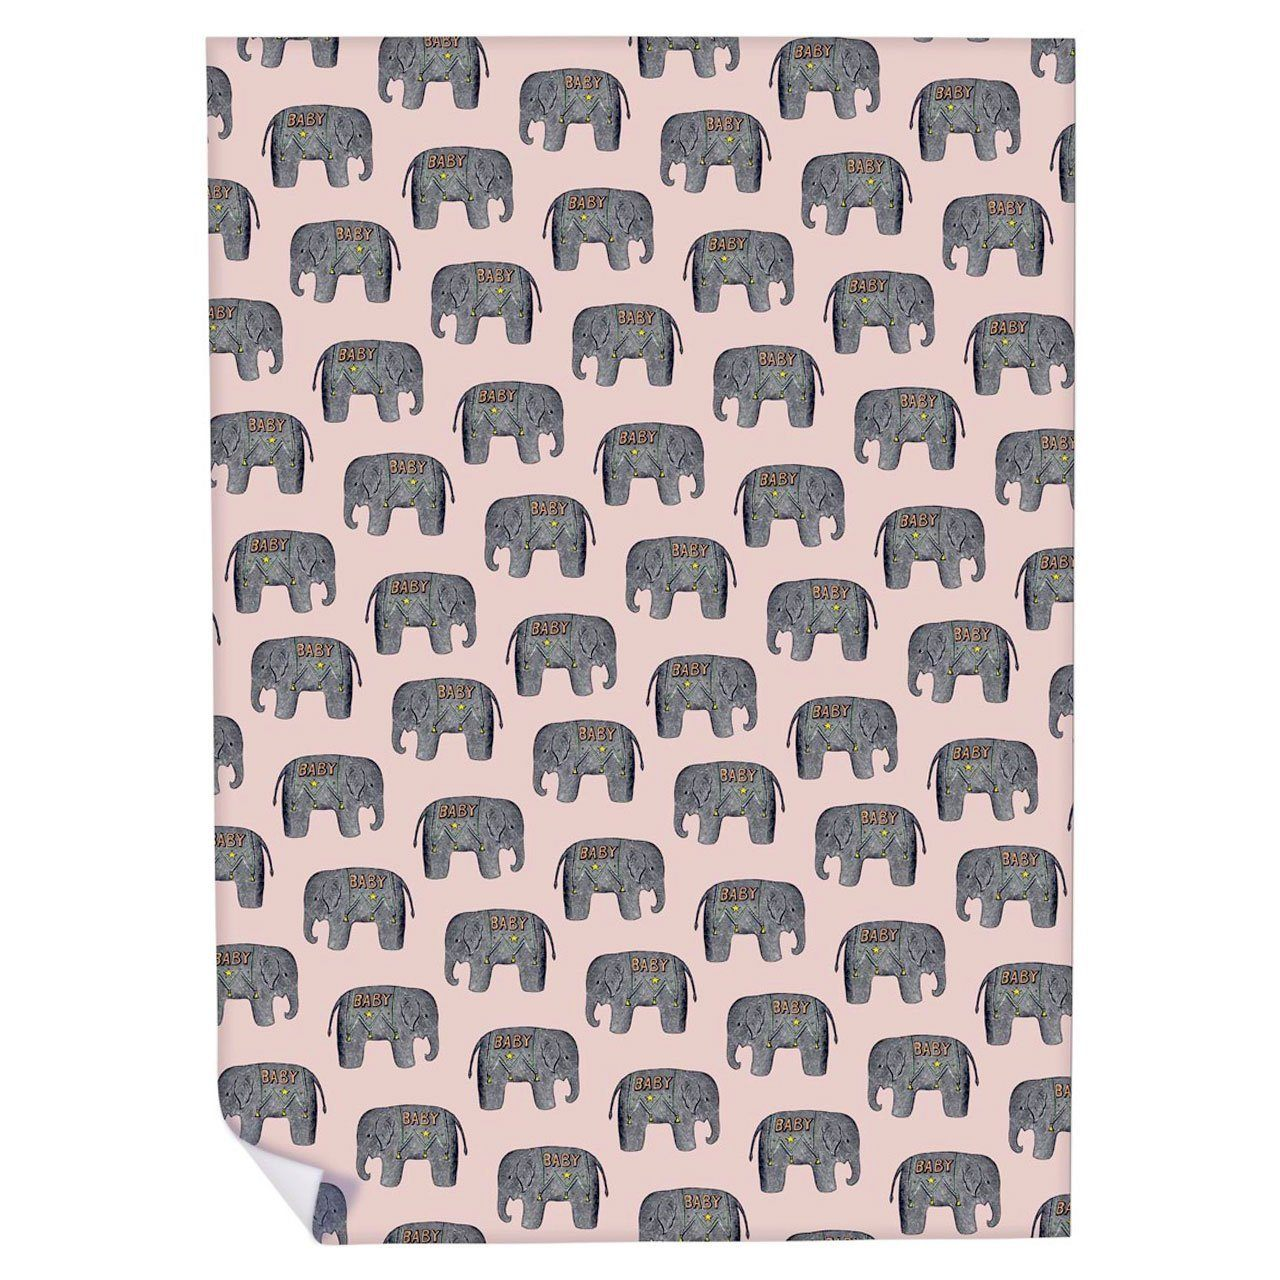 Baby Elephant (Pink) Wrapping Paper - Chase and Wonder - Proudly Made in Britain